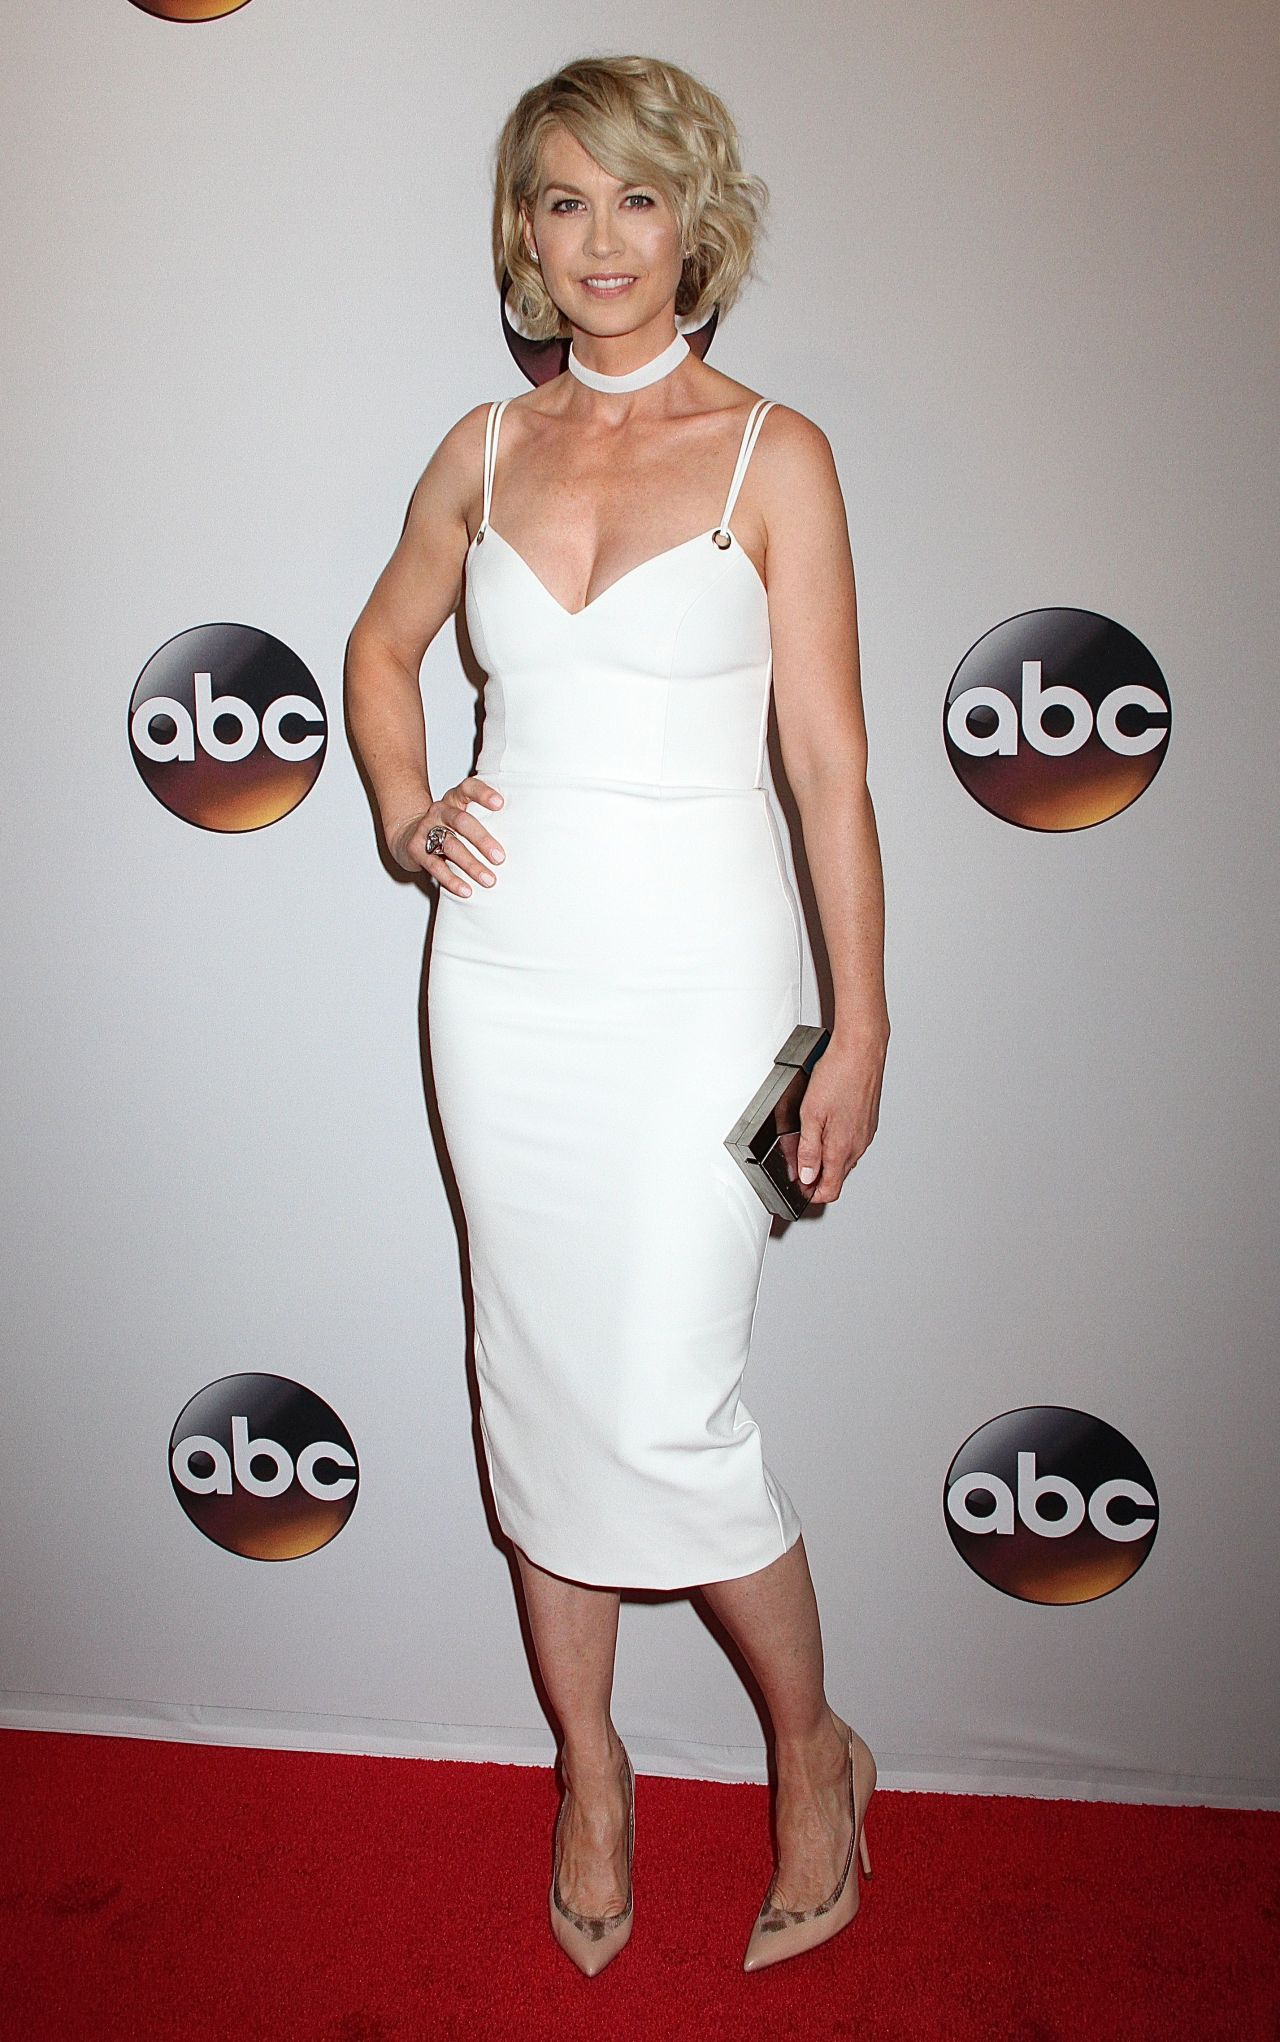 Jenna Elfman Abc Upfronts David Geffen Hall New York